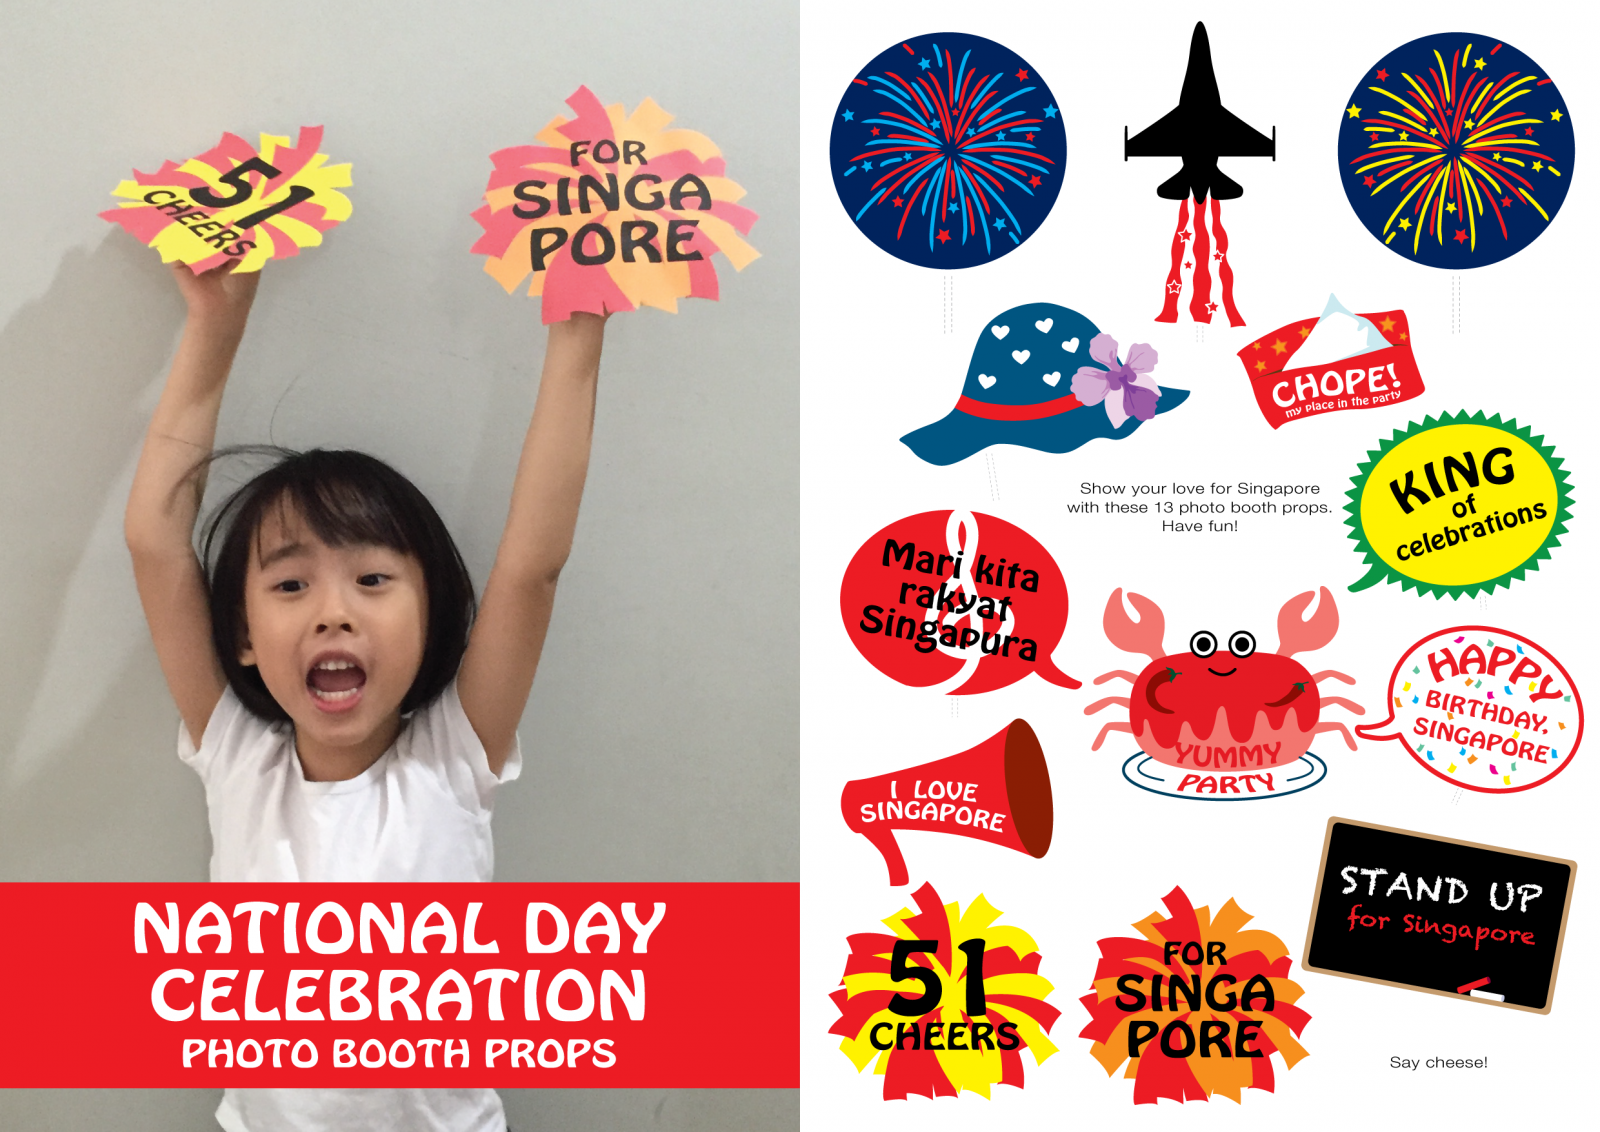 nationaldayphotoboothpropspgs12